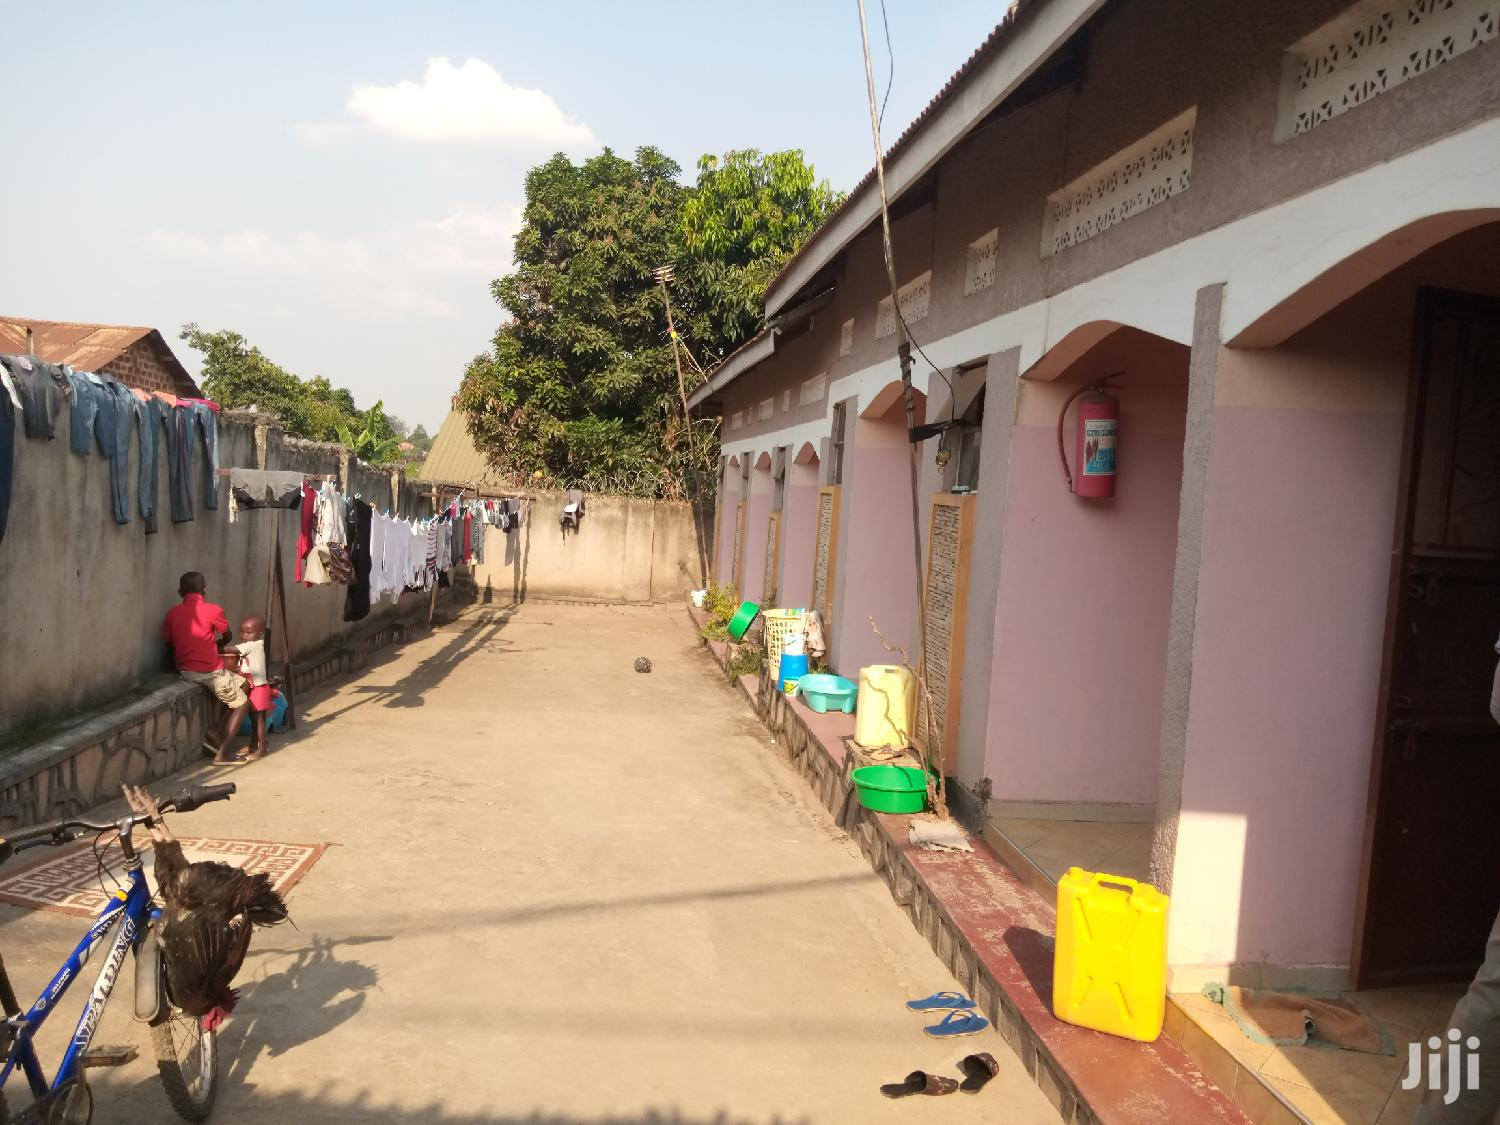 Self Contained Double Room House For Rent In Kyaliwajala | Houses & Apartments For Rent for sale in Kampala, Central Region, Uganda